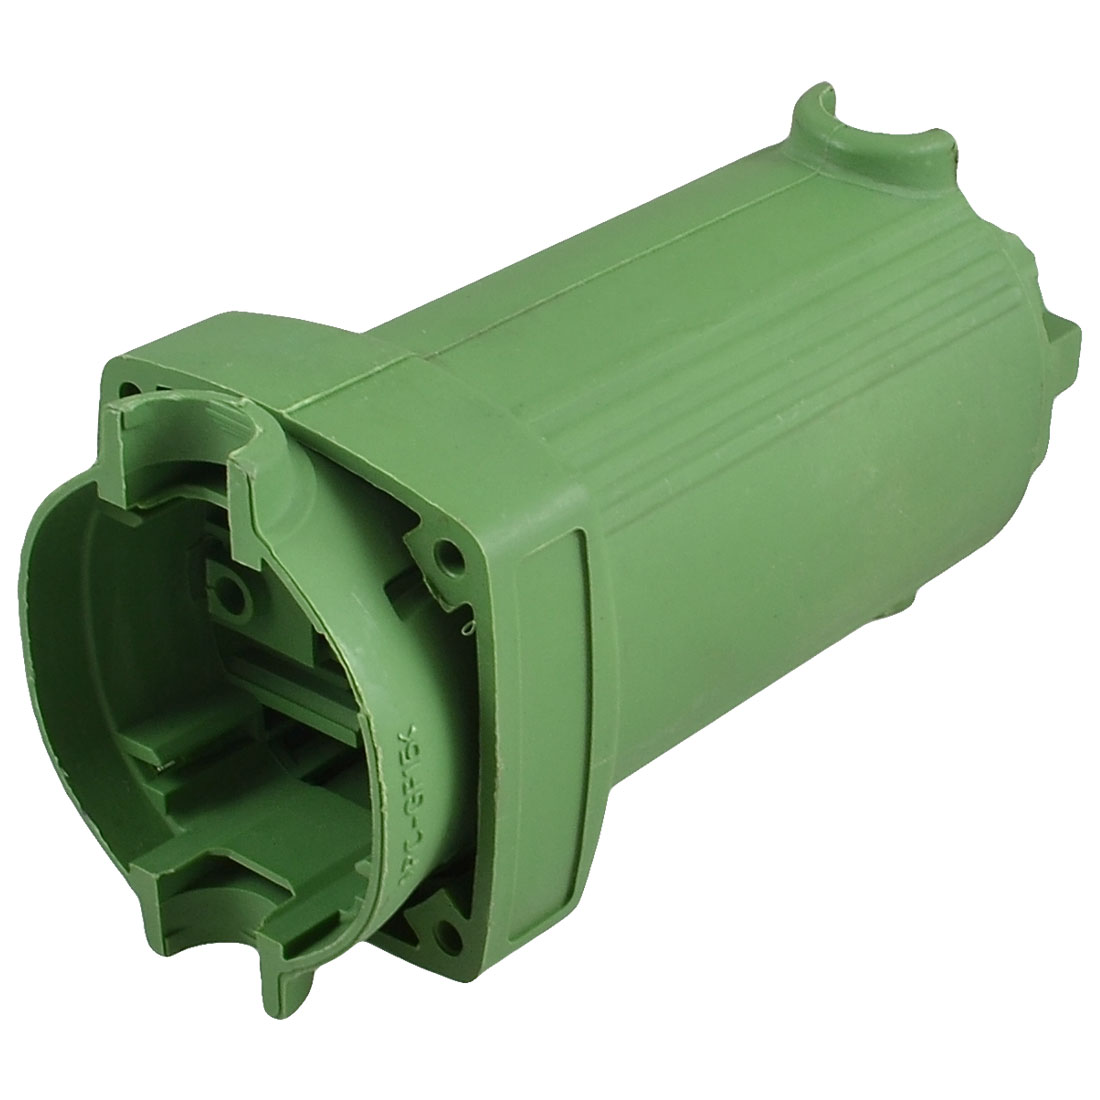 Plastic Angle Grinder Spare Parts Green Shell for Hitachi F3